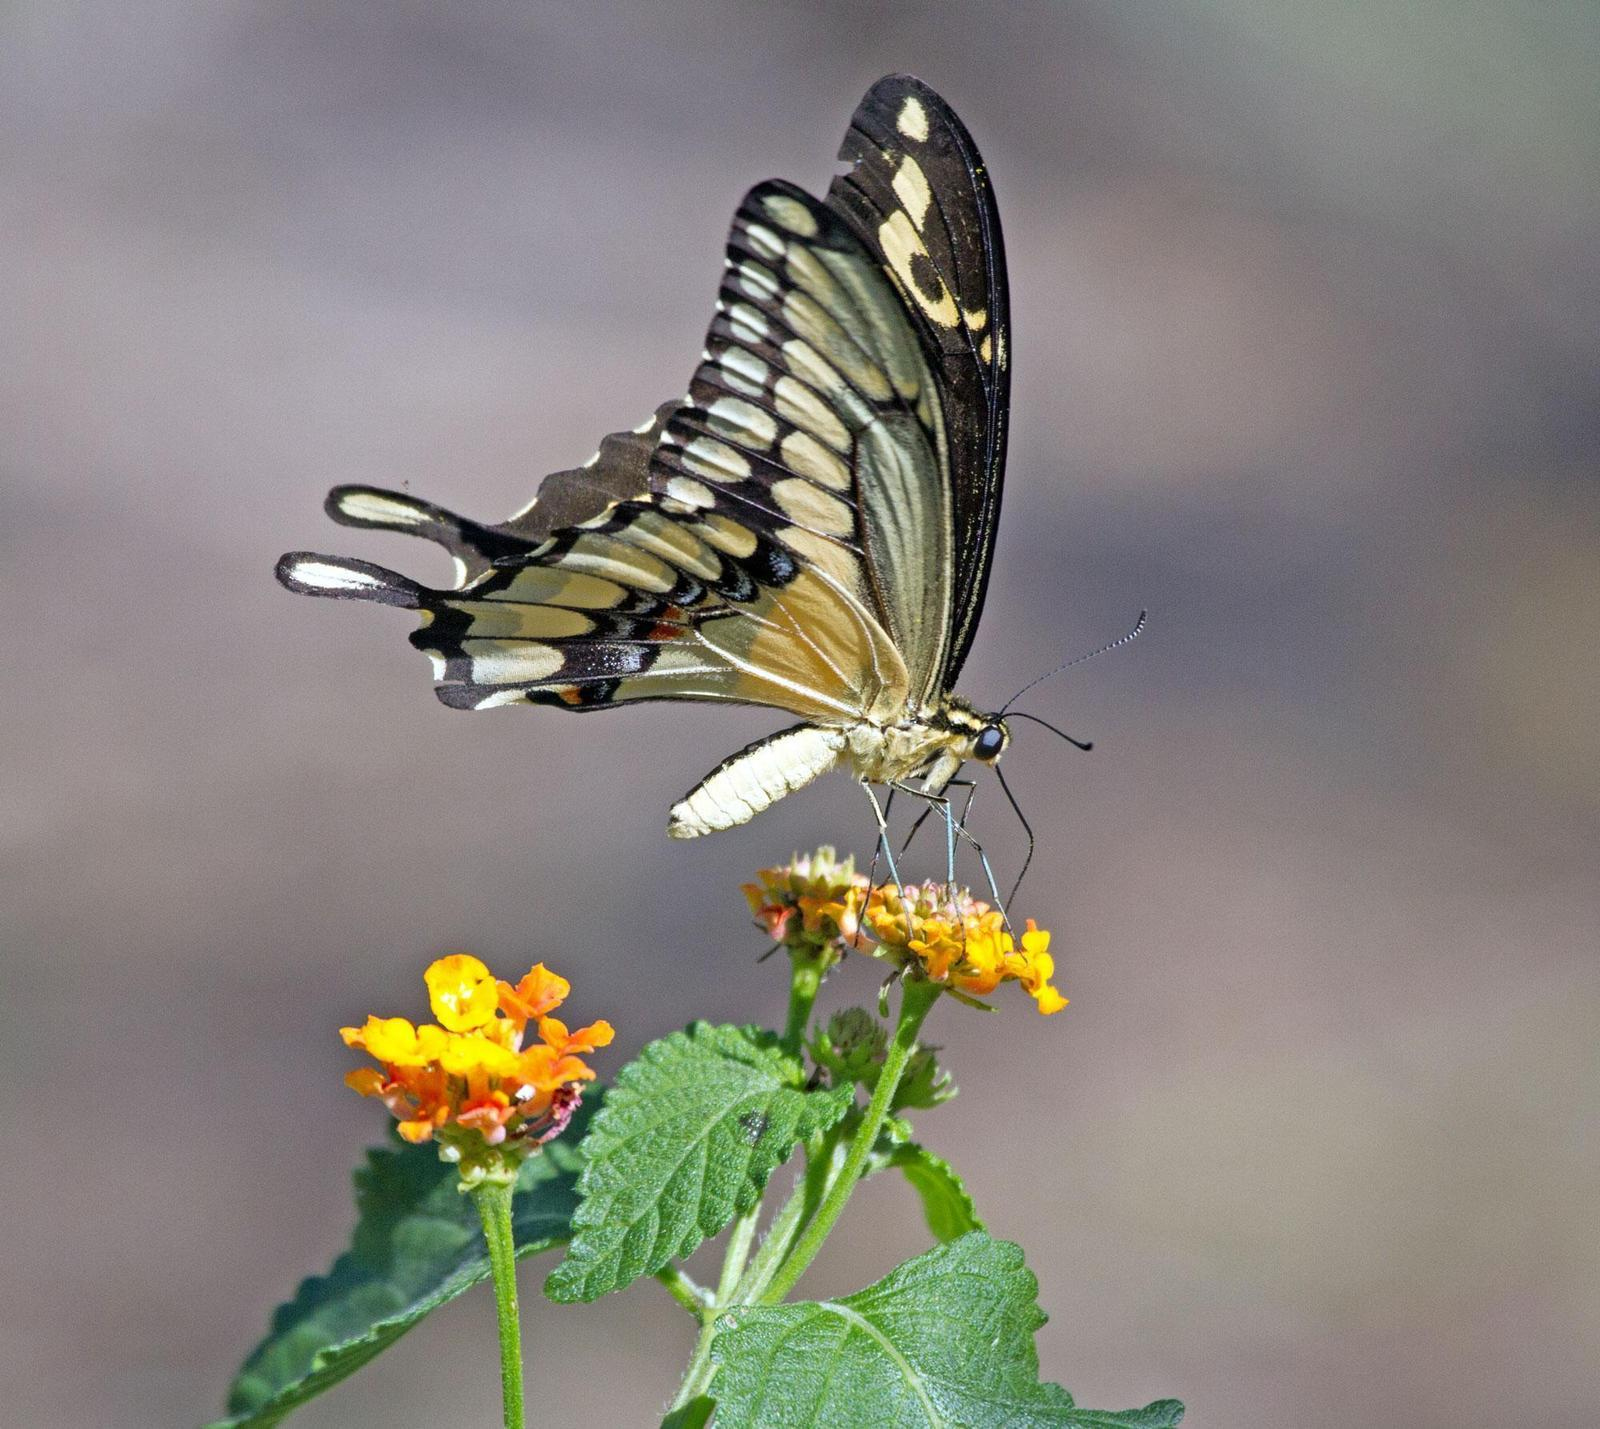 Giant Swallowtail Photo by Scott Berglund